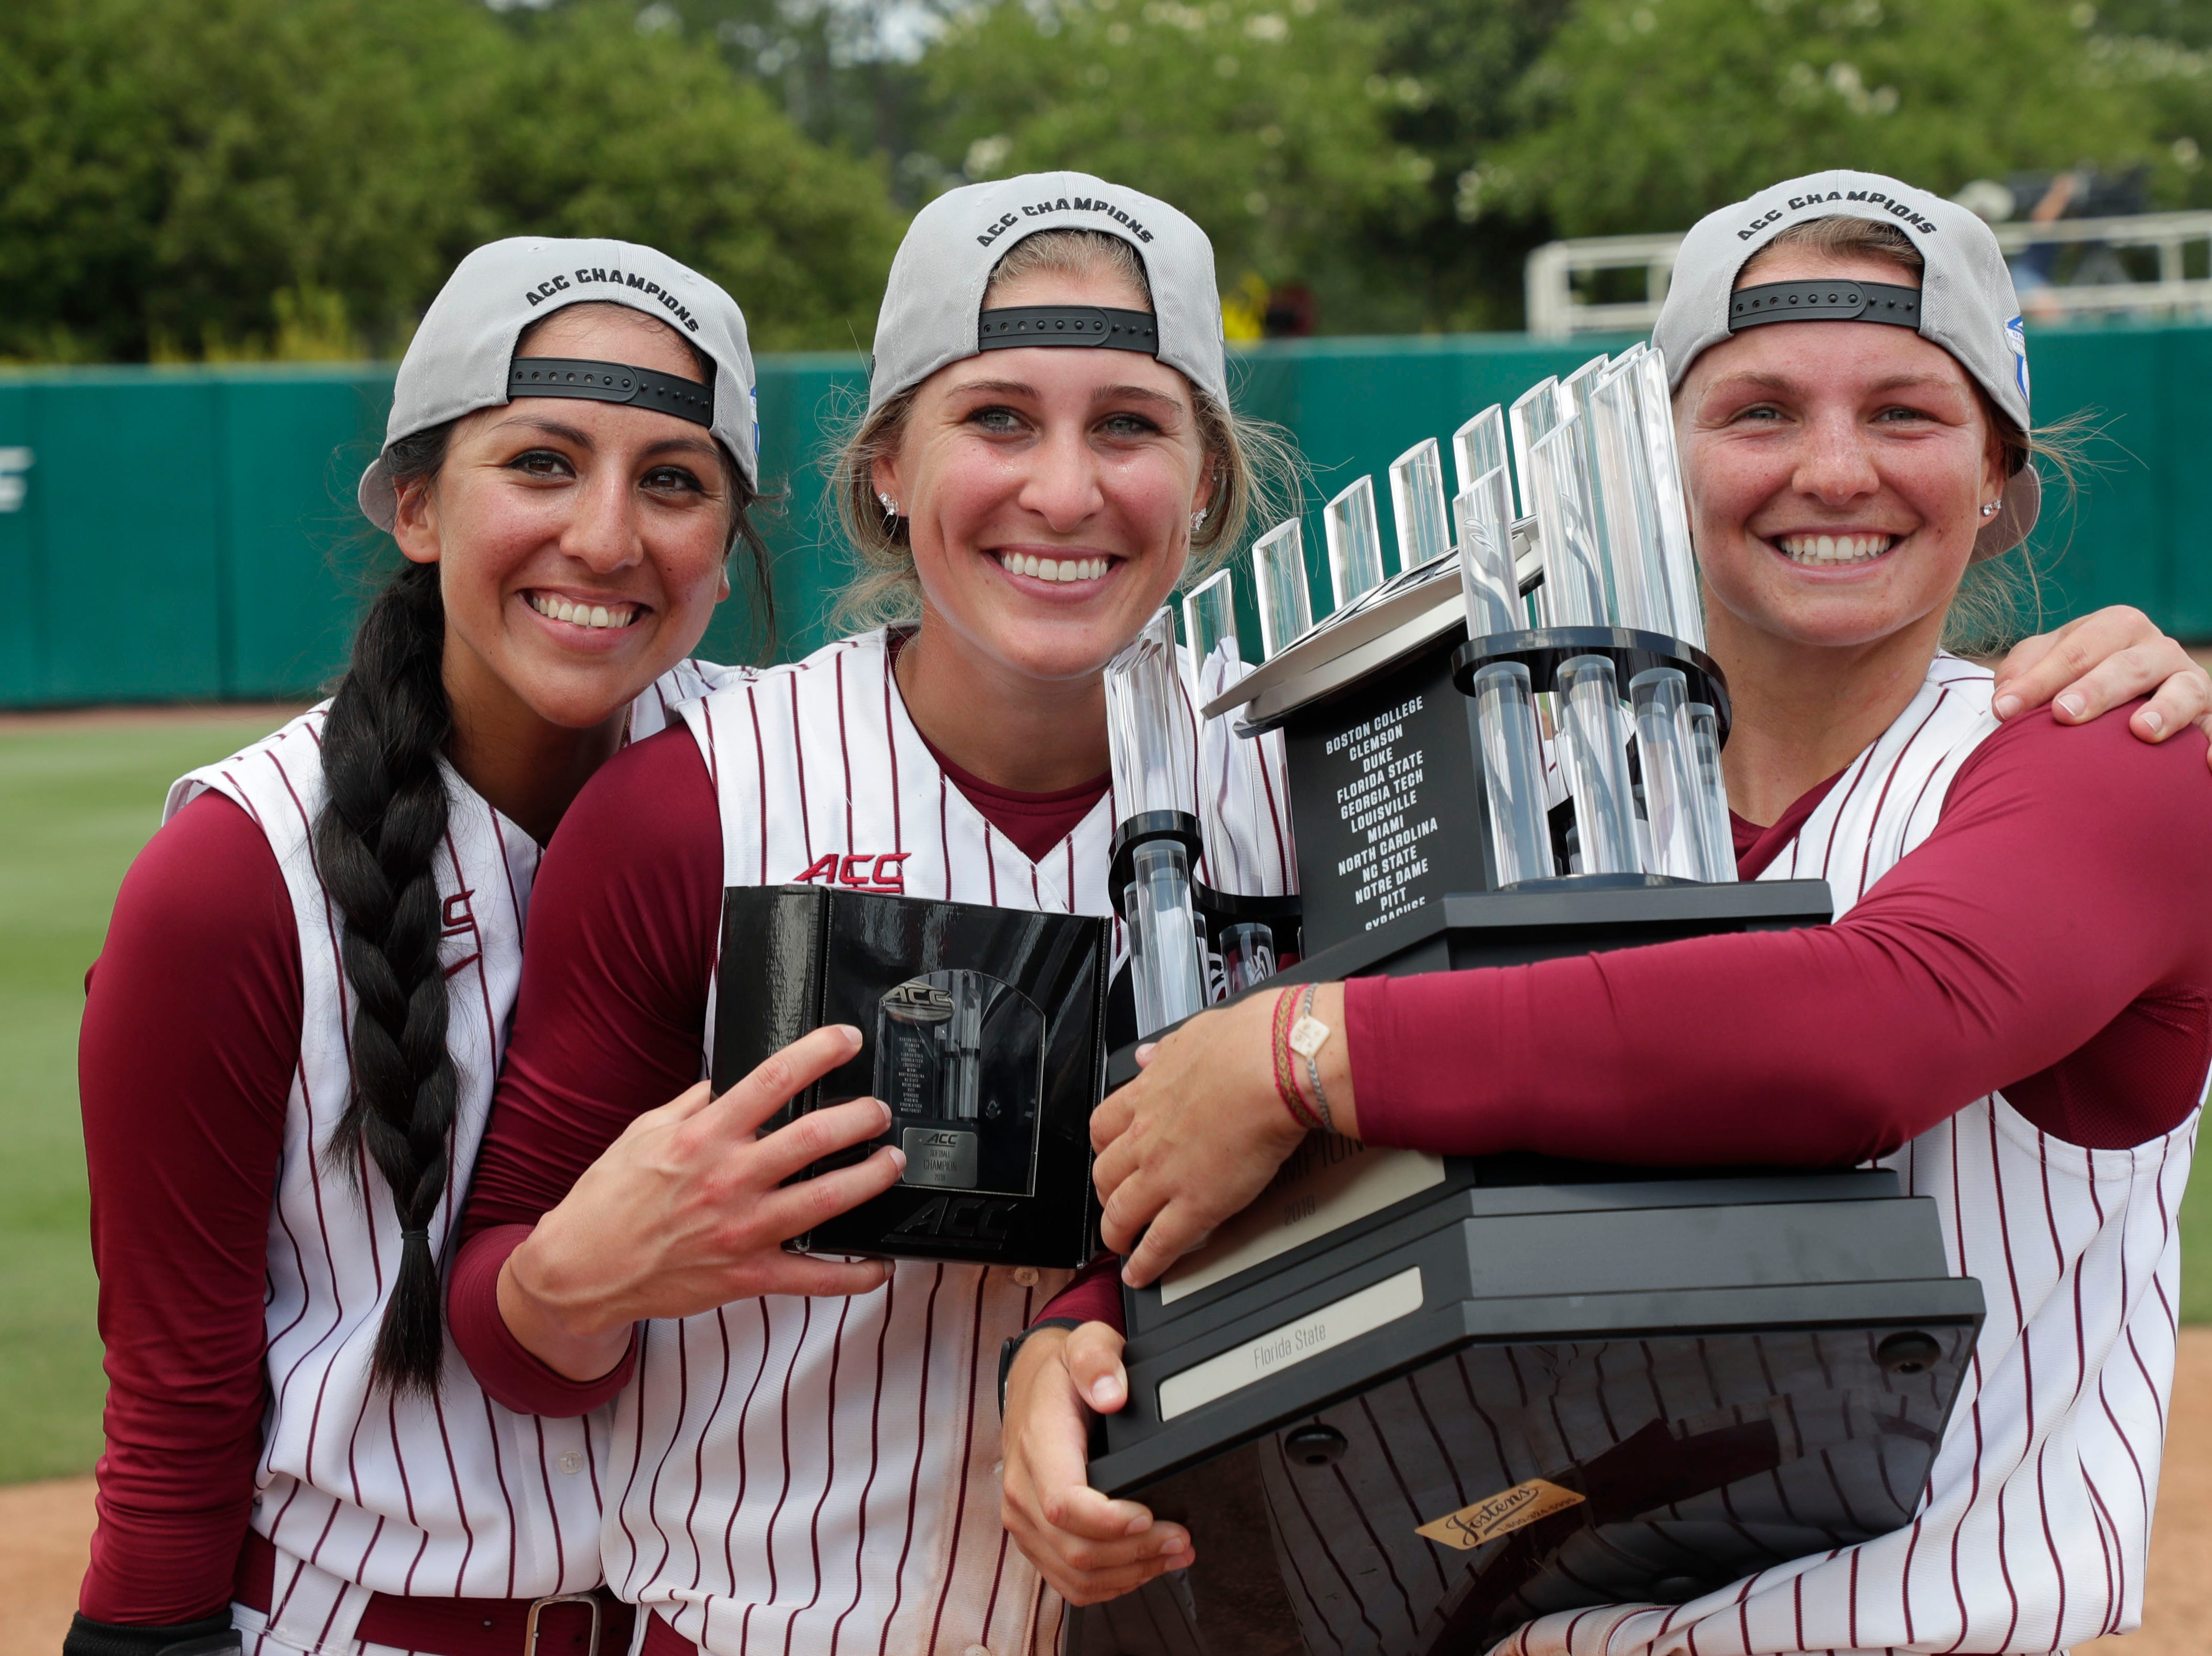 Florida State Seminoles outfielder Zoe Casas (6), Florida State Seminoles infielder Carsyn Gordon (12), and Florida State Seminoles infielder Cali Harrod (10) pose for a photo with their trophies. The Florida State Seminoles celebrate their victory over the UNC Tar Heels for the ACC Softball Championship title Saturday, May 11, 2019.